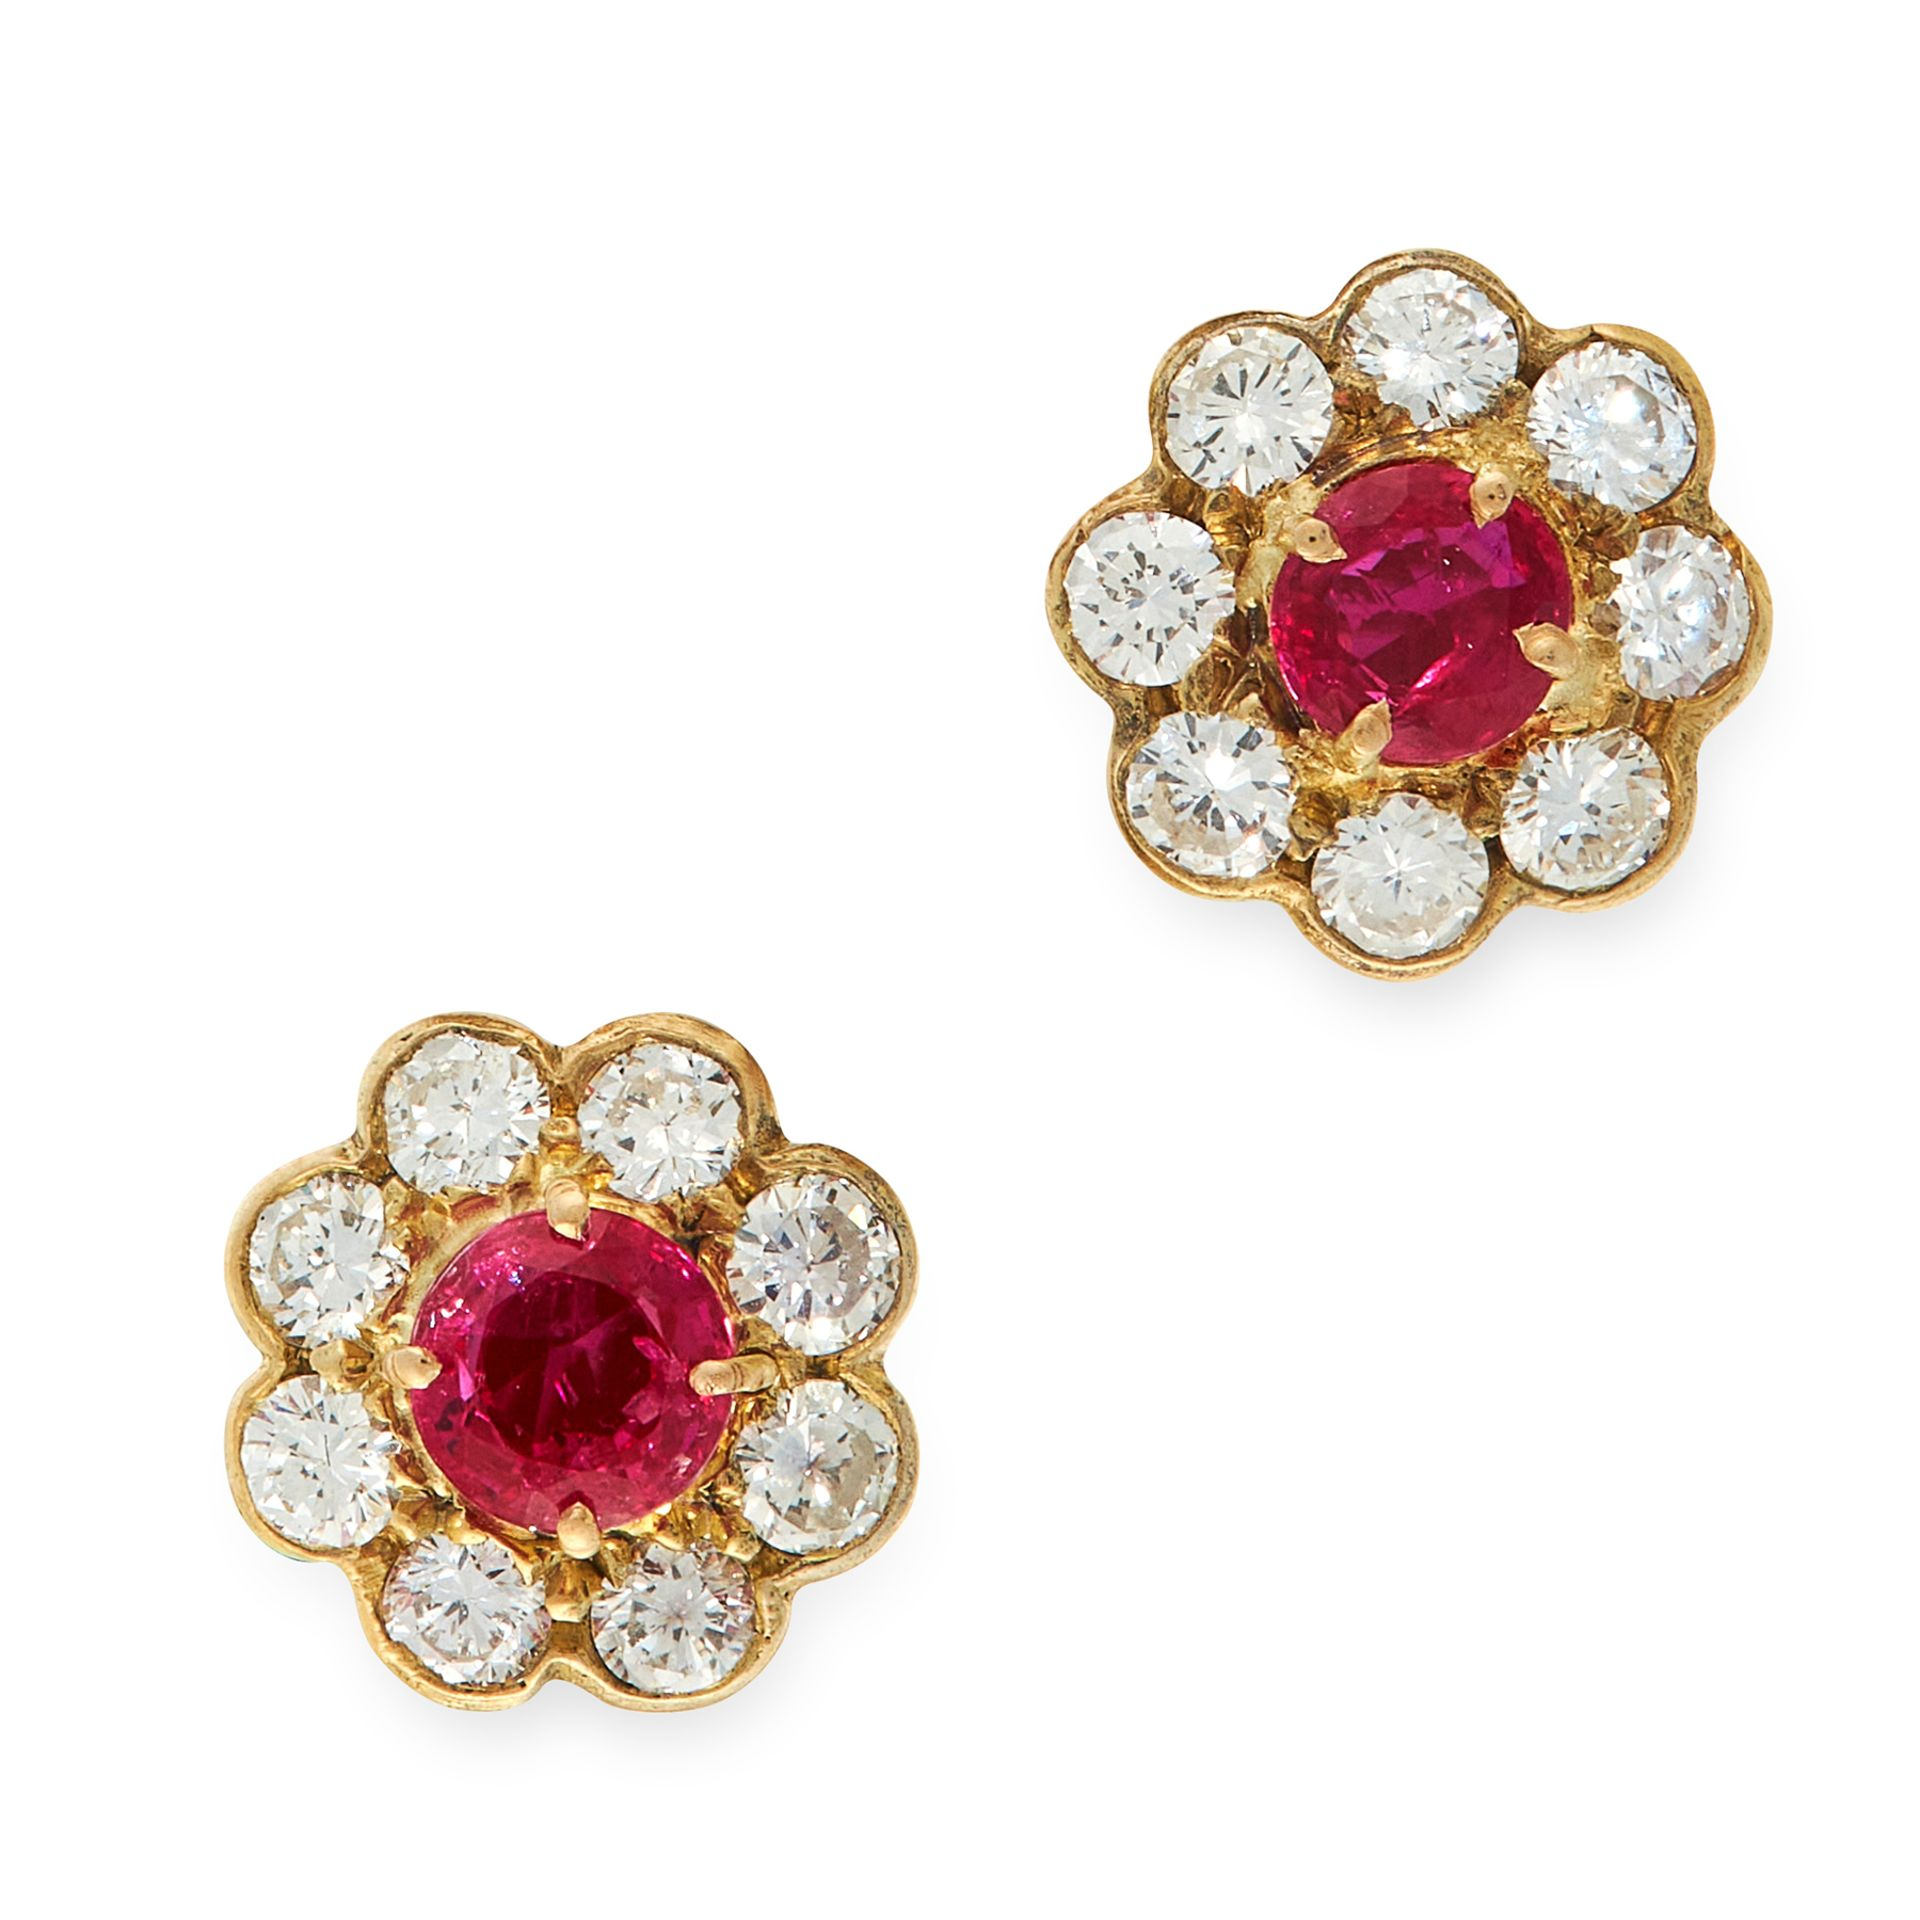 A PAIR OF RUBY AND DIAMOND CLUSTER STUD EARRINGS in 18ct yellow gold, each set with a round cut ruby